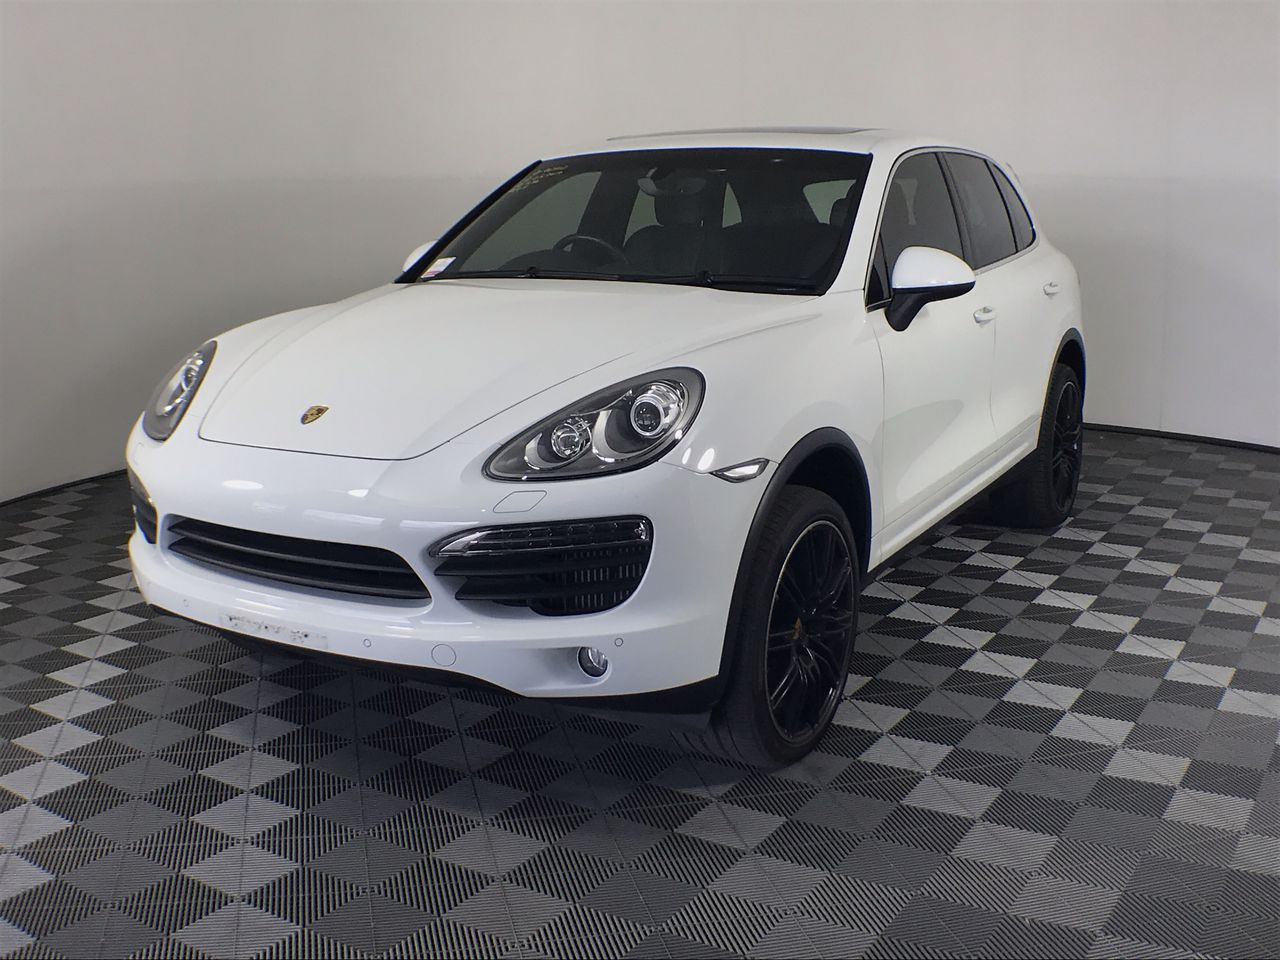 2013 Porsche Cayenne S DIESEL 92A Turbo Diesel Automatic Wagon 60,371km